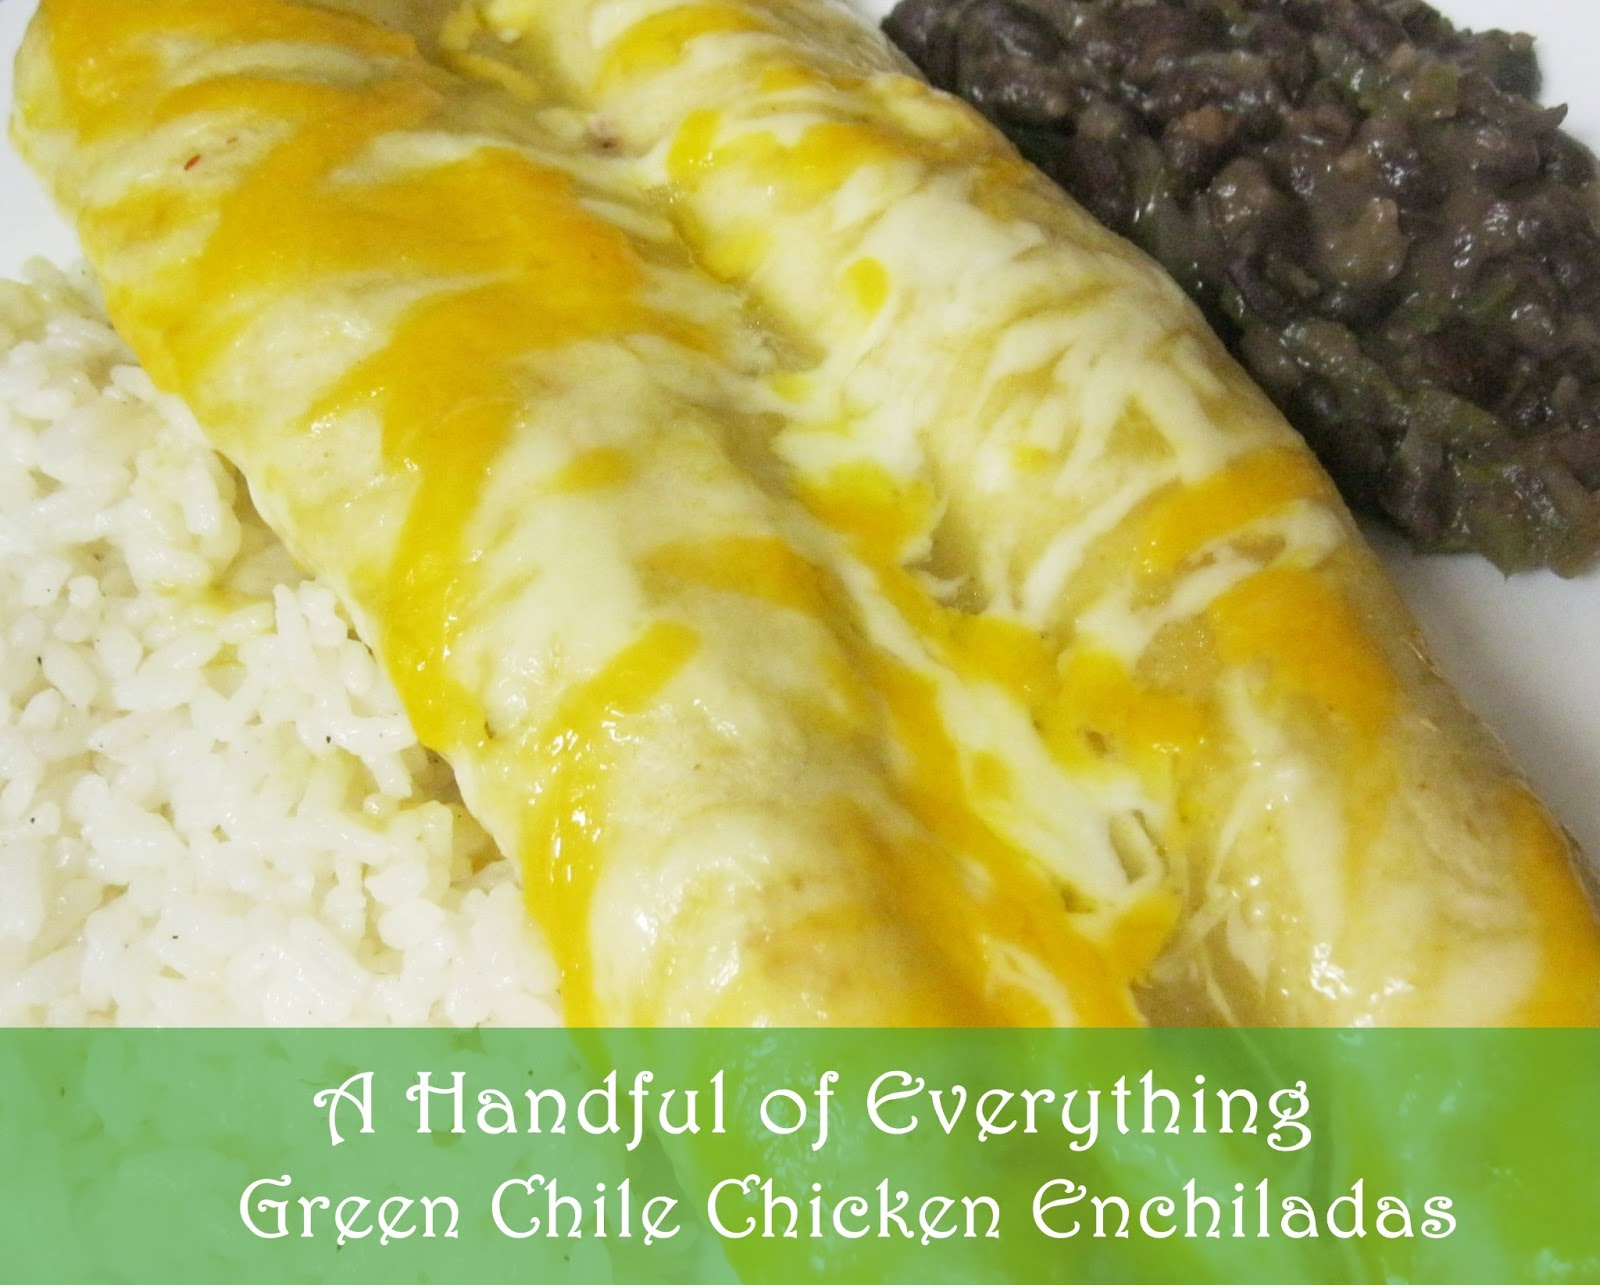 ... green chile enchiladas lamb green chili green chili chicken enchiladas